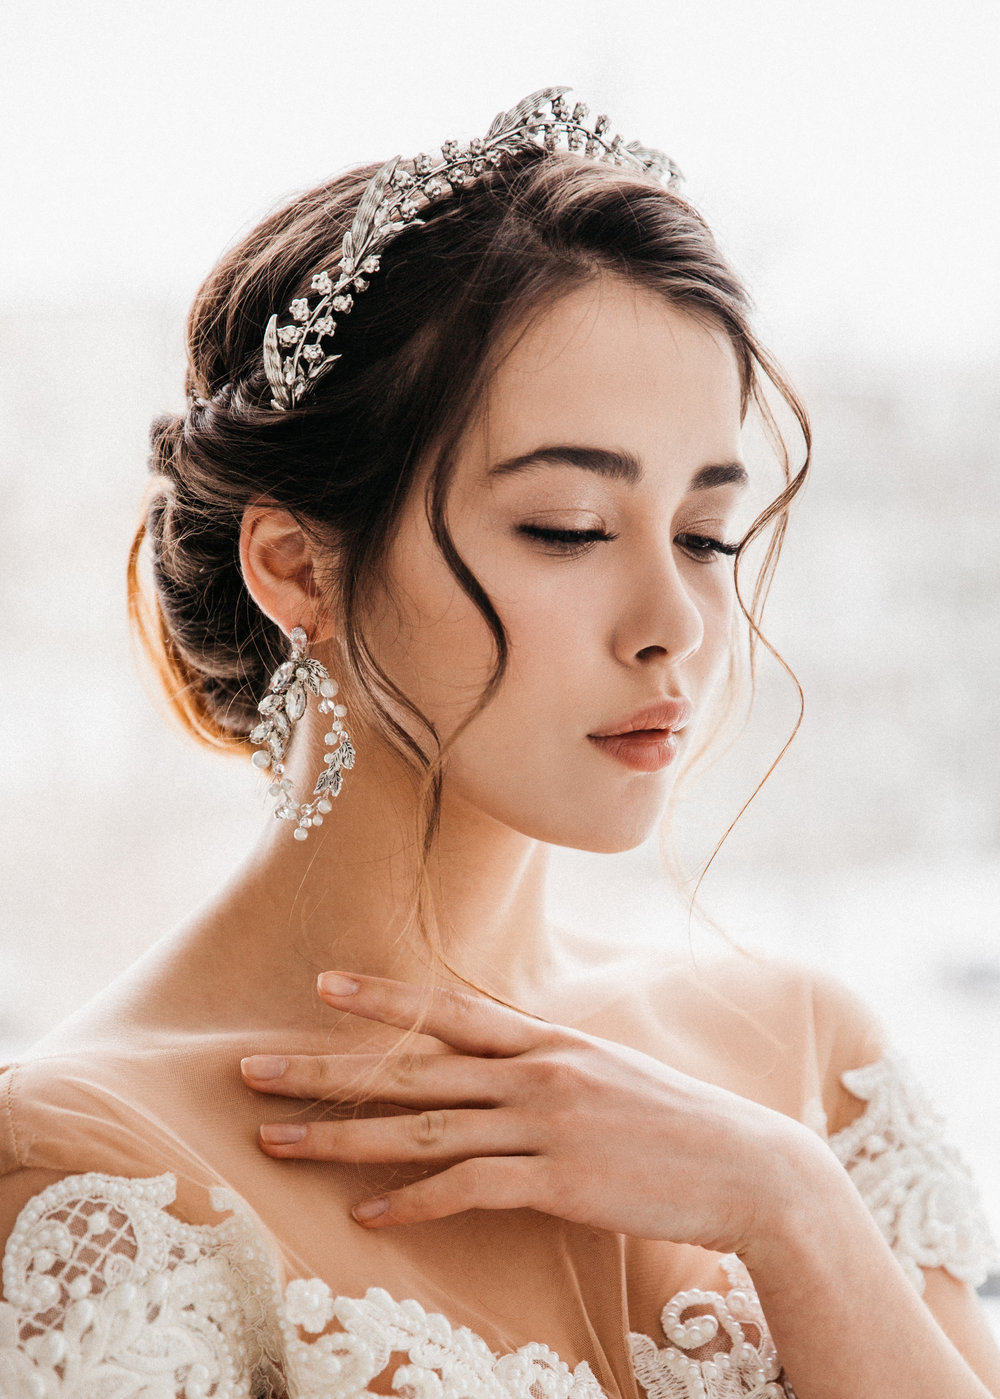 Discover Biano Bridal Shop - Bridal Headpieces and JewelleryHandmade in SwitzerlandUnique DesignPossibility to Rush OrdersFree Shipping WorldwideCustomisable OrdersFast response on your questions